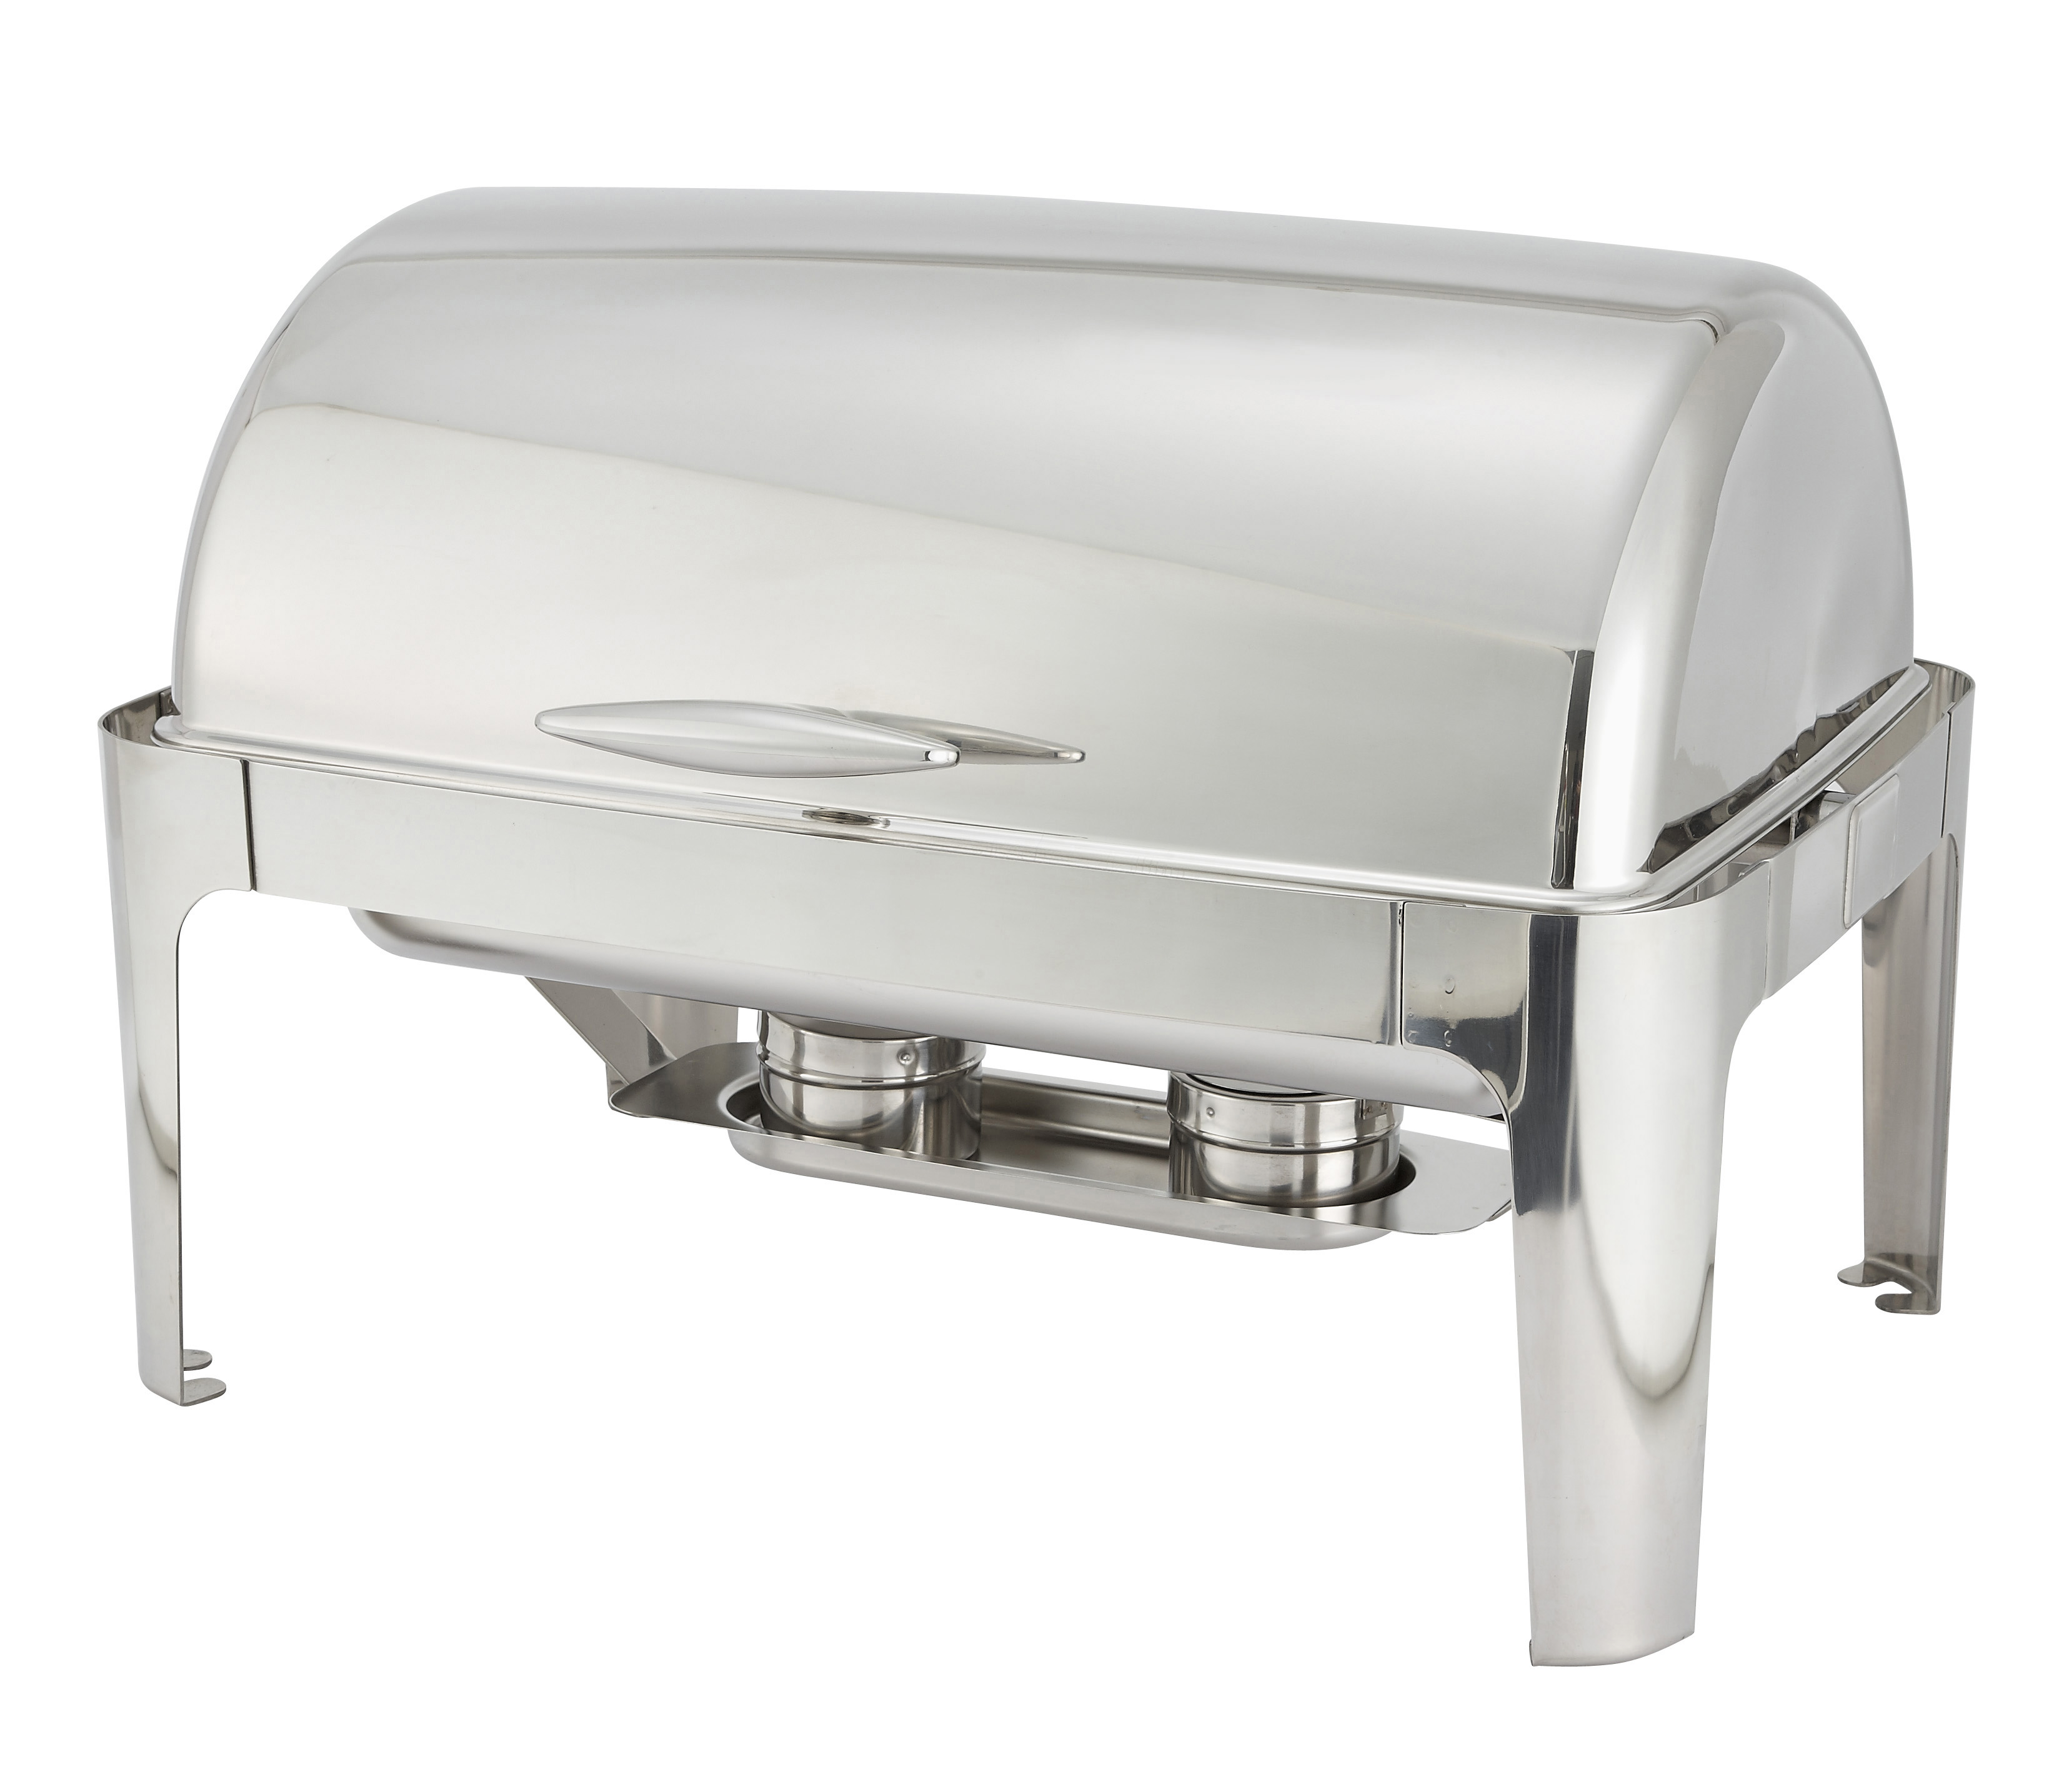 8 Qt, Full Size Roll Top Chafer, Oblong